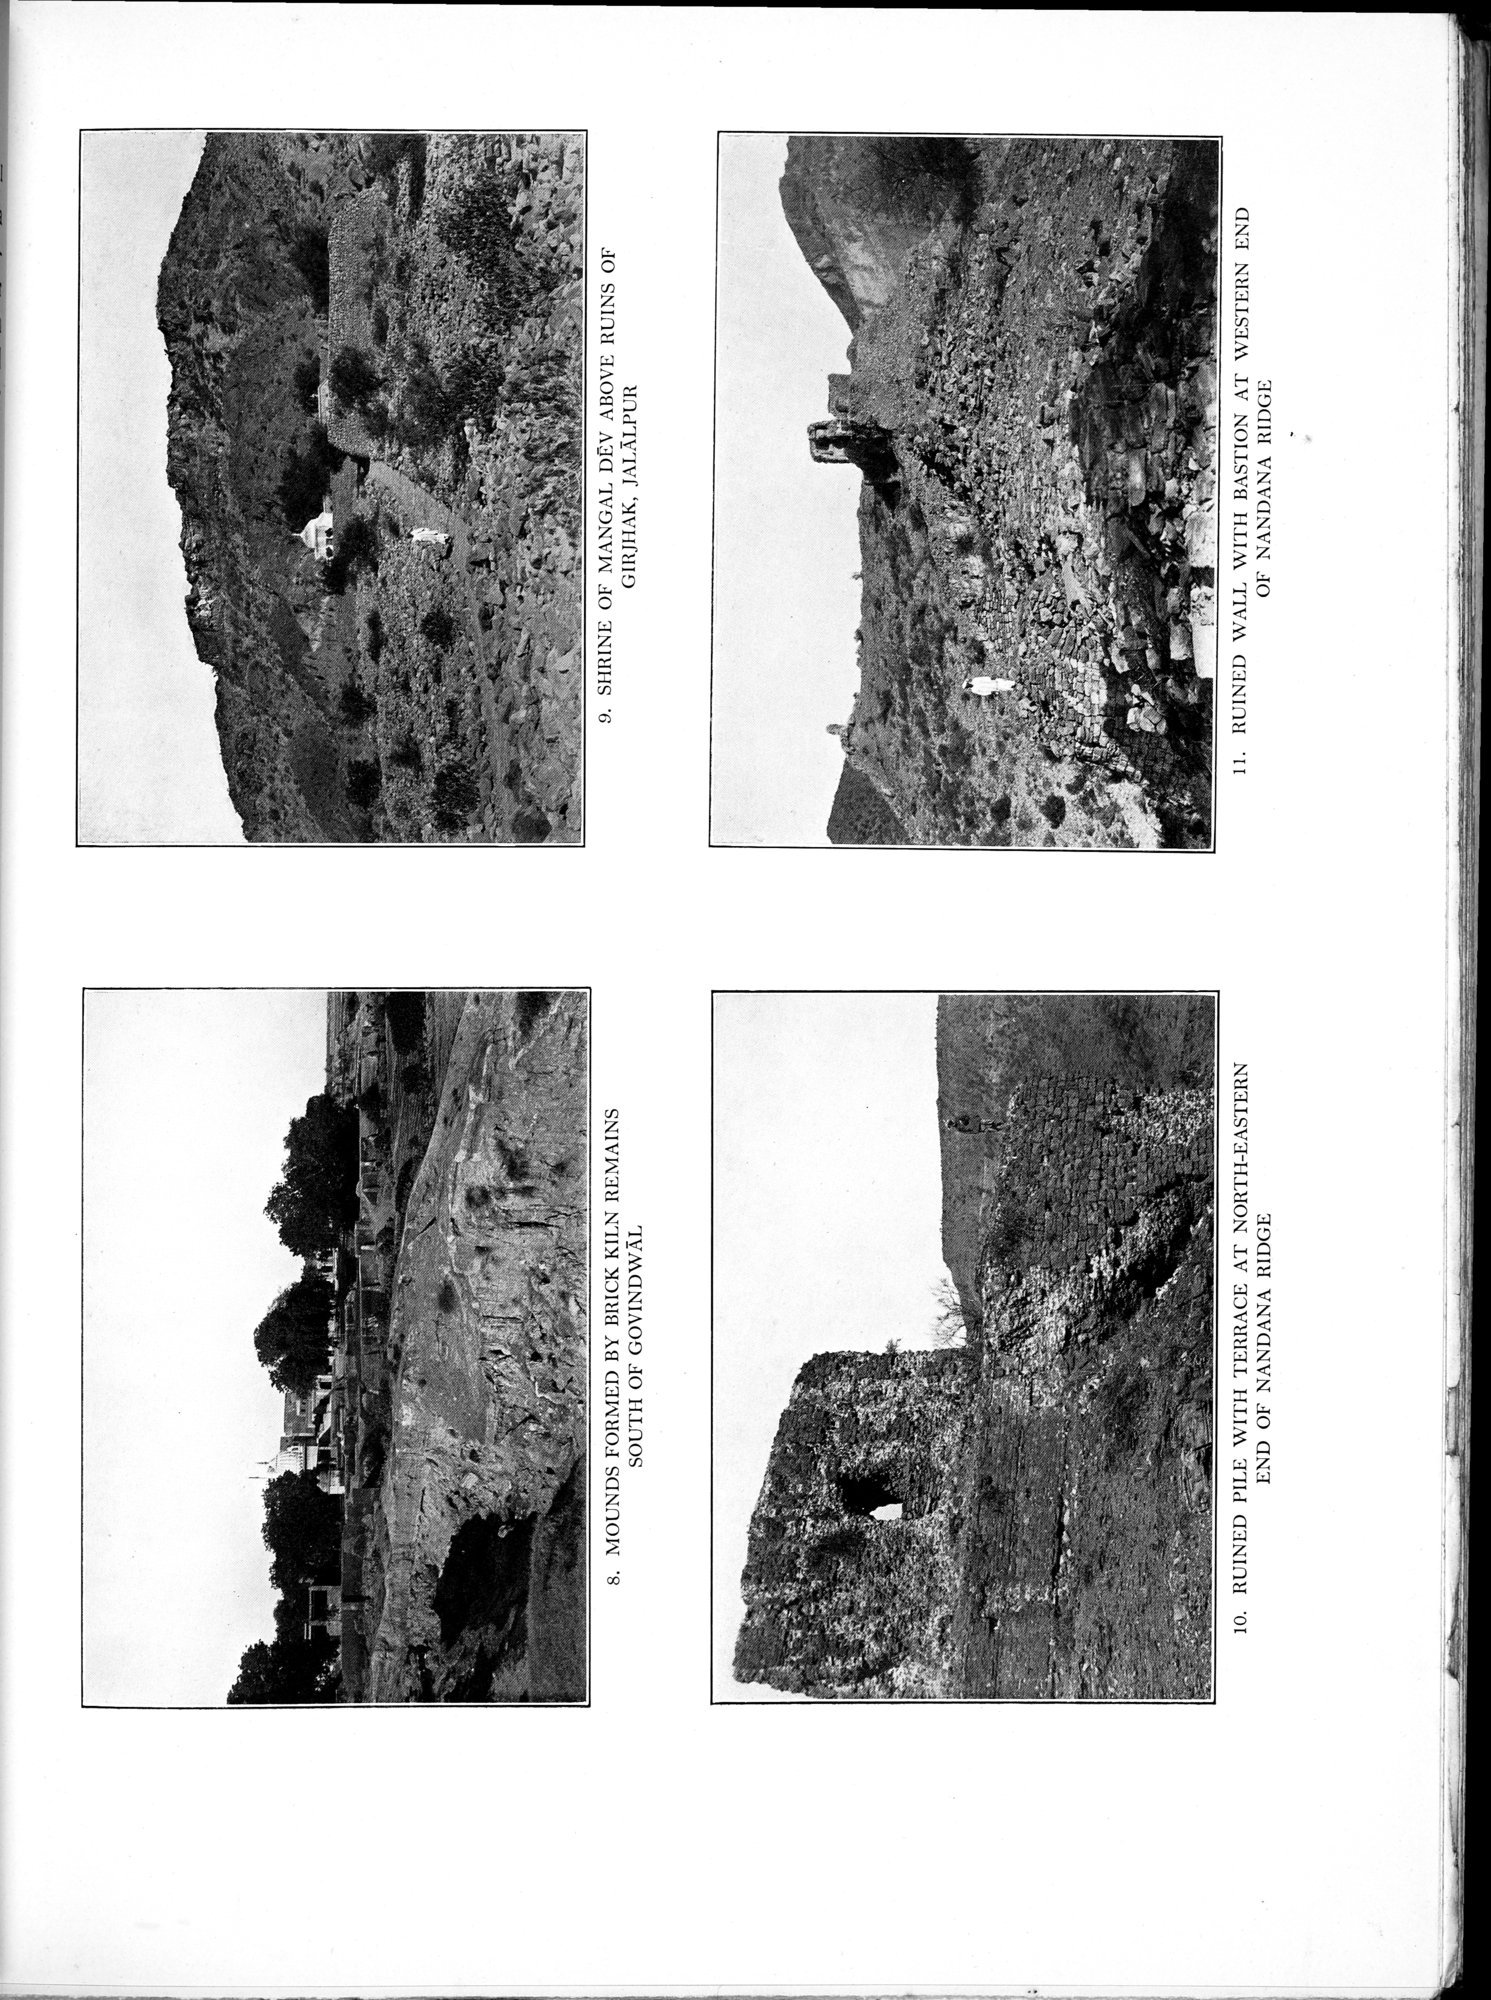 Archaeological Reconnaissances in North-Western India and South-Eastern Īrān : vol.1 / Page 77 (Grayscale High Resolution Image)